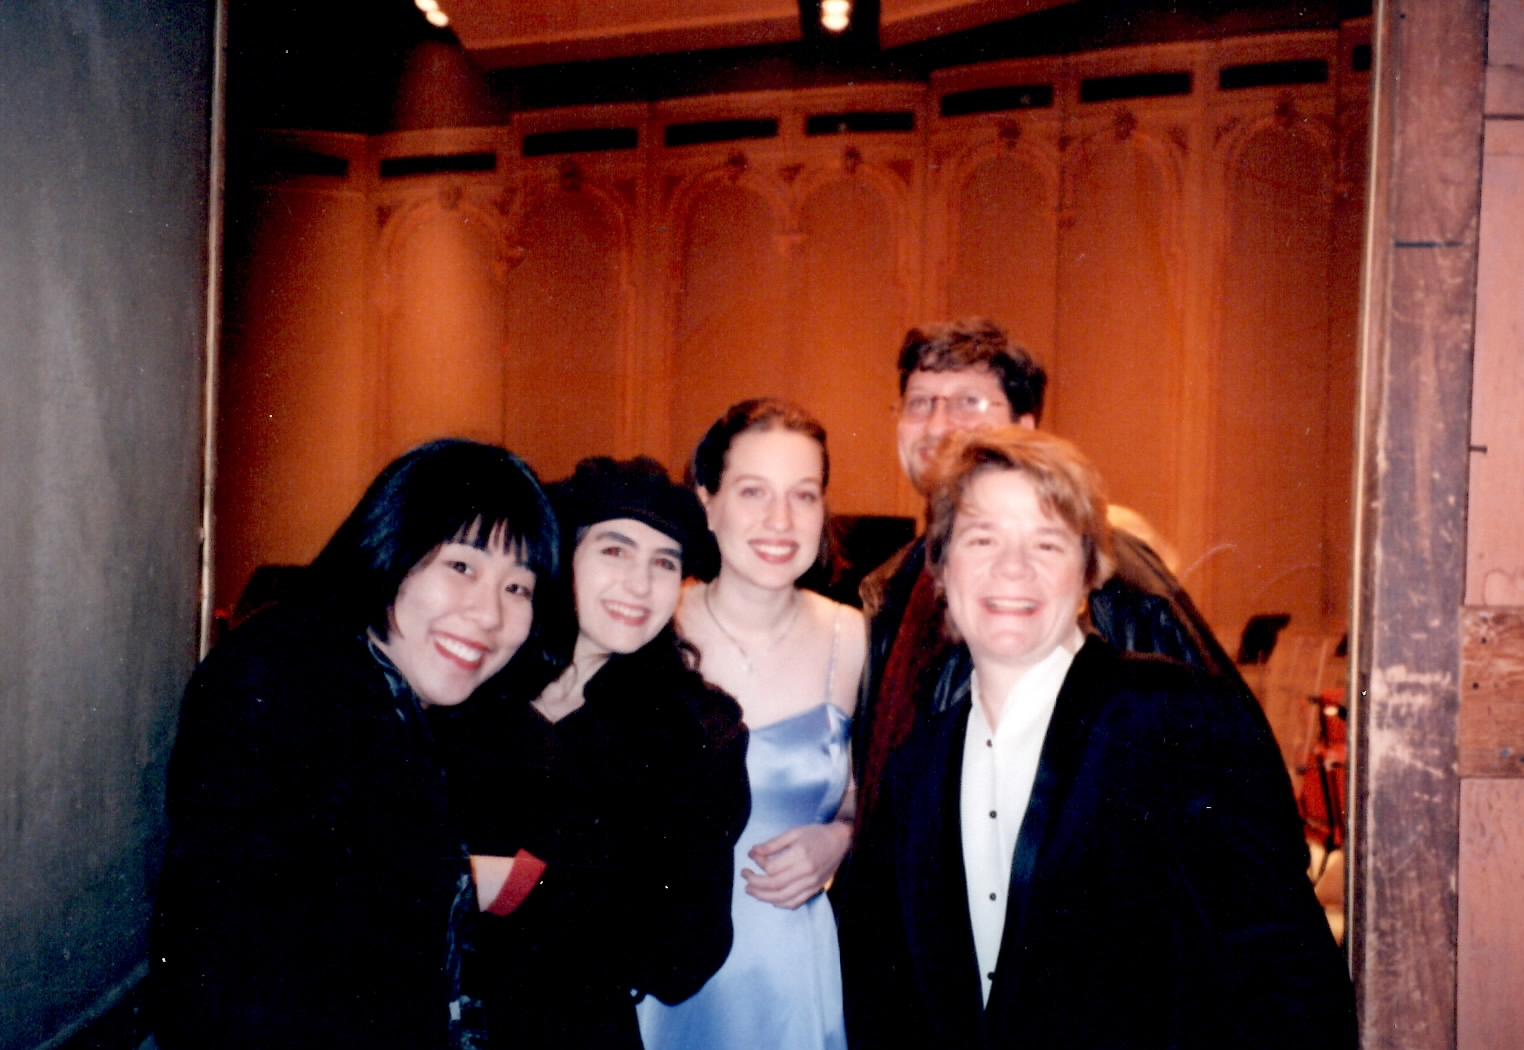 Marin Alsop and friends backstage after my Barber Concerto premiere (1998) in Philadelphia at the Academy of Music. From left to right Amy, Stephanie, myself, Phil and Marin Alsop.